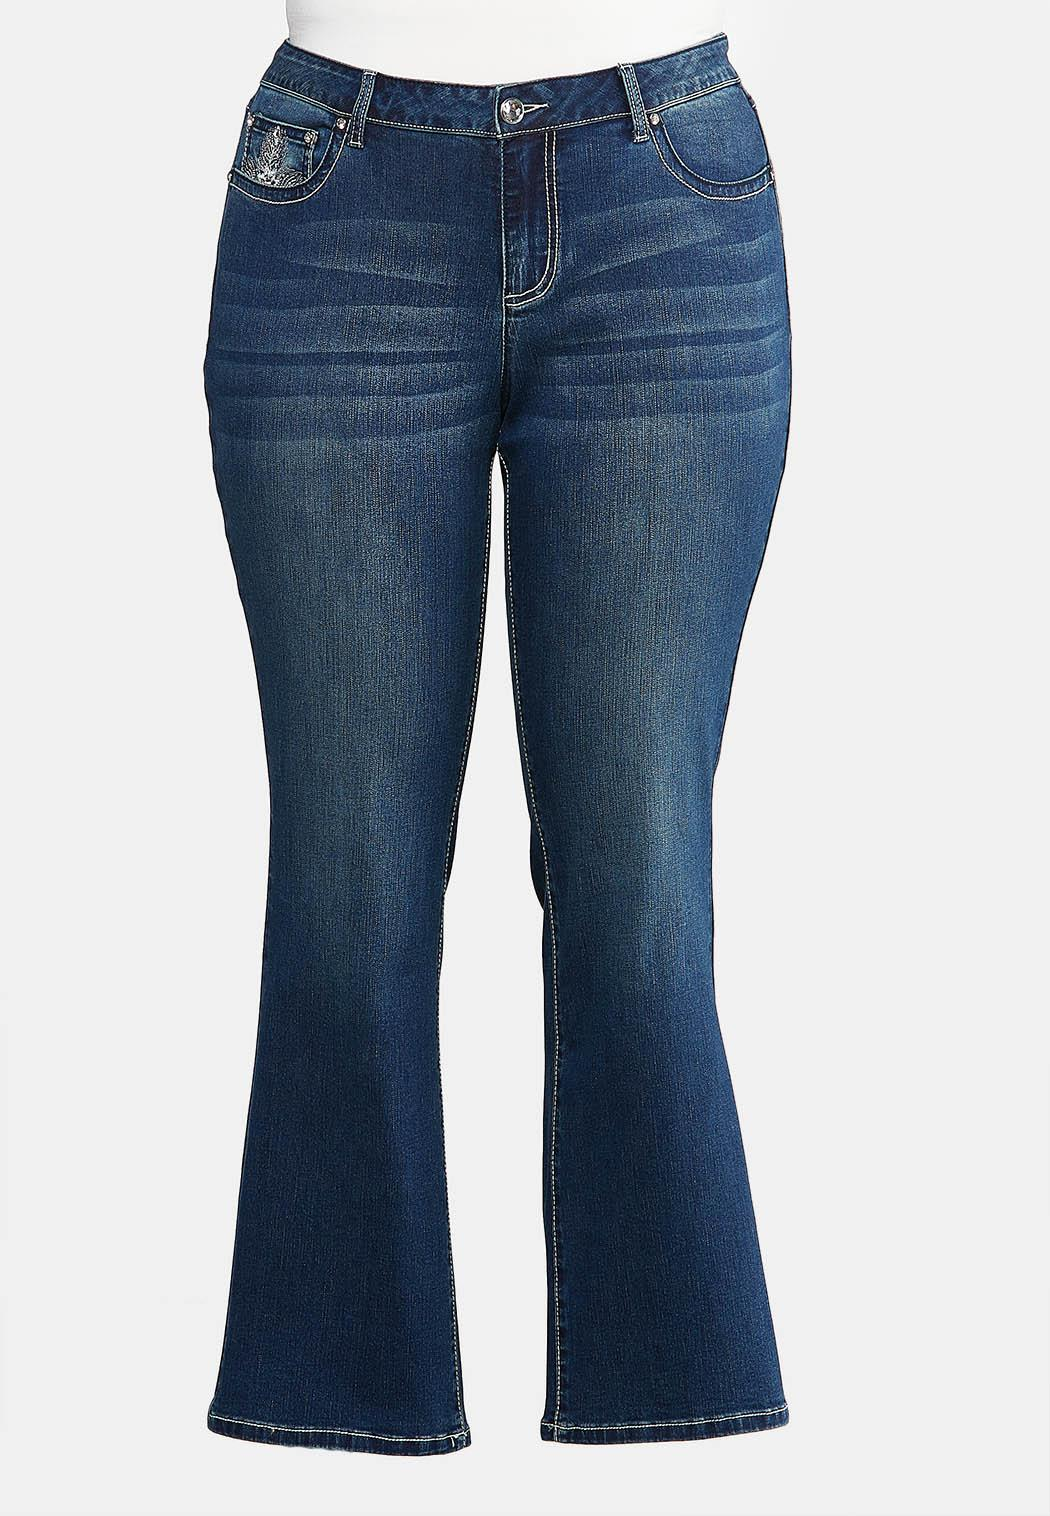 Plus Extended Bootcut Bling Feather Jeans (Item #43942809)